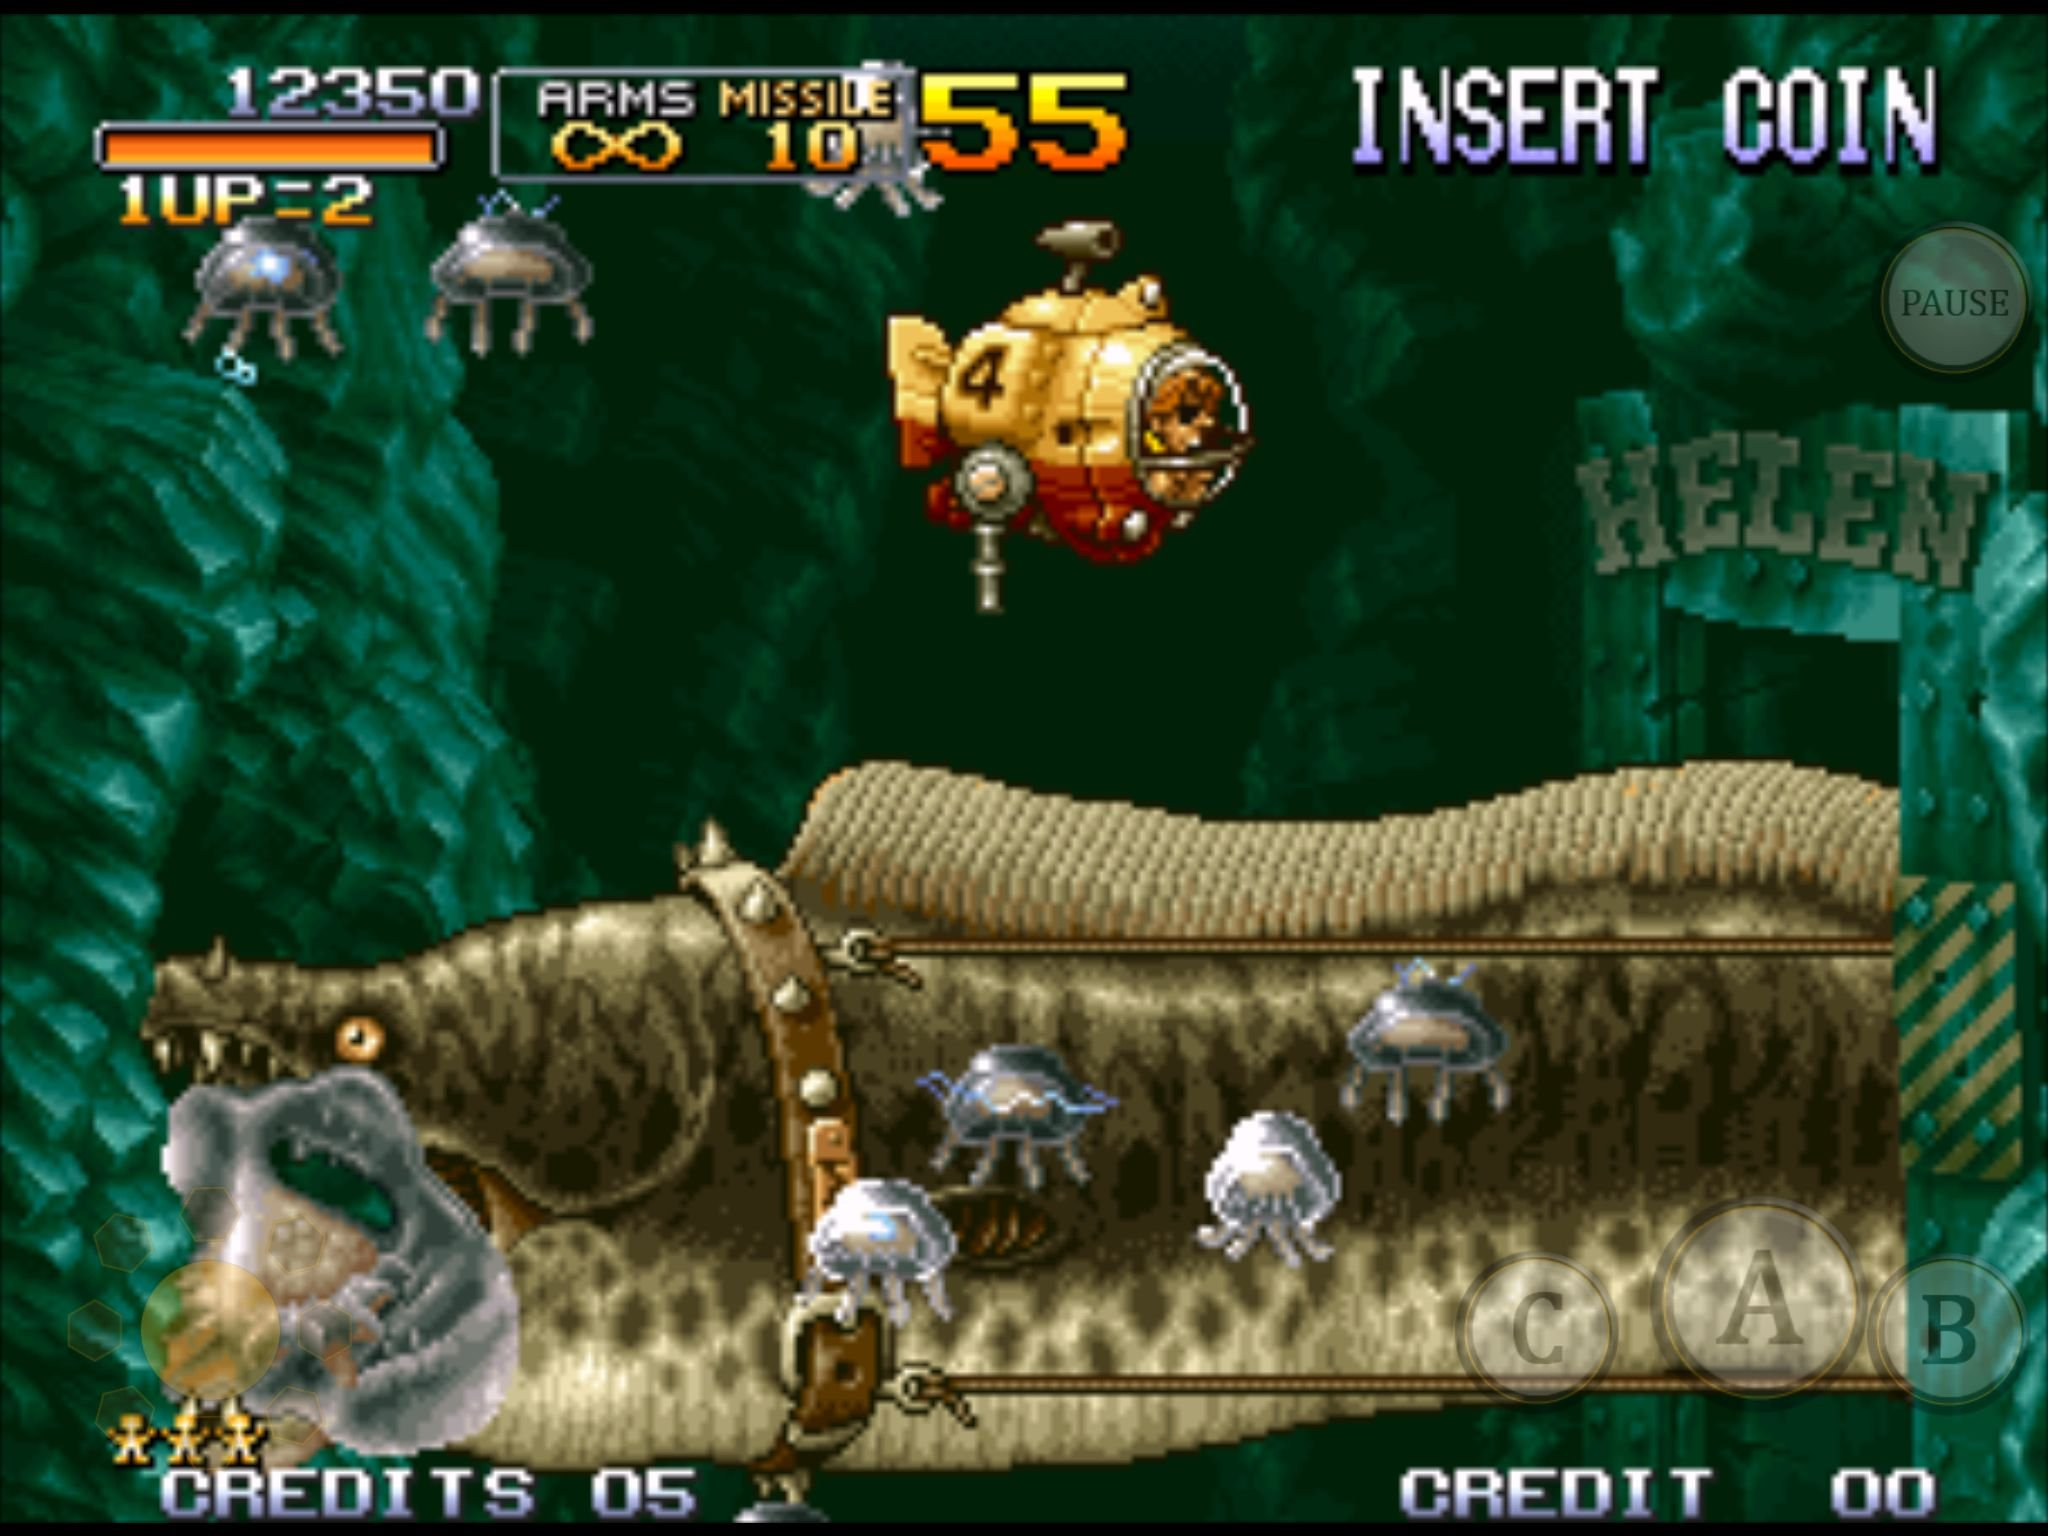 Humble Bundle PC & Android 10 includes Metal Slug 3, Skulls of the Shogun, and a whole bunch of other pretty darn good games